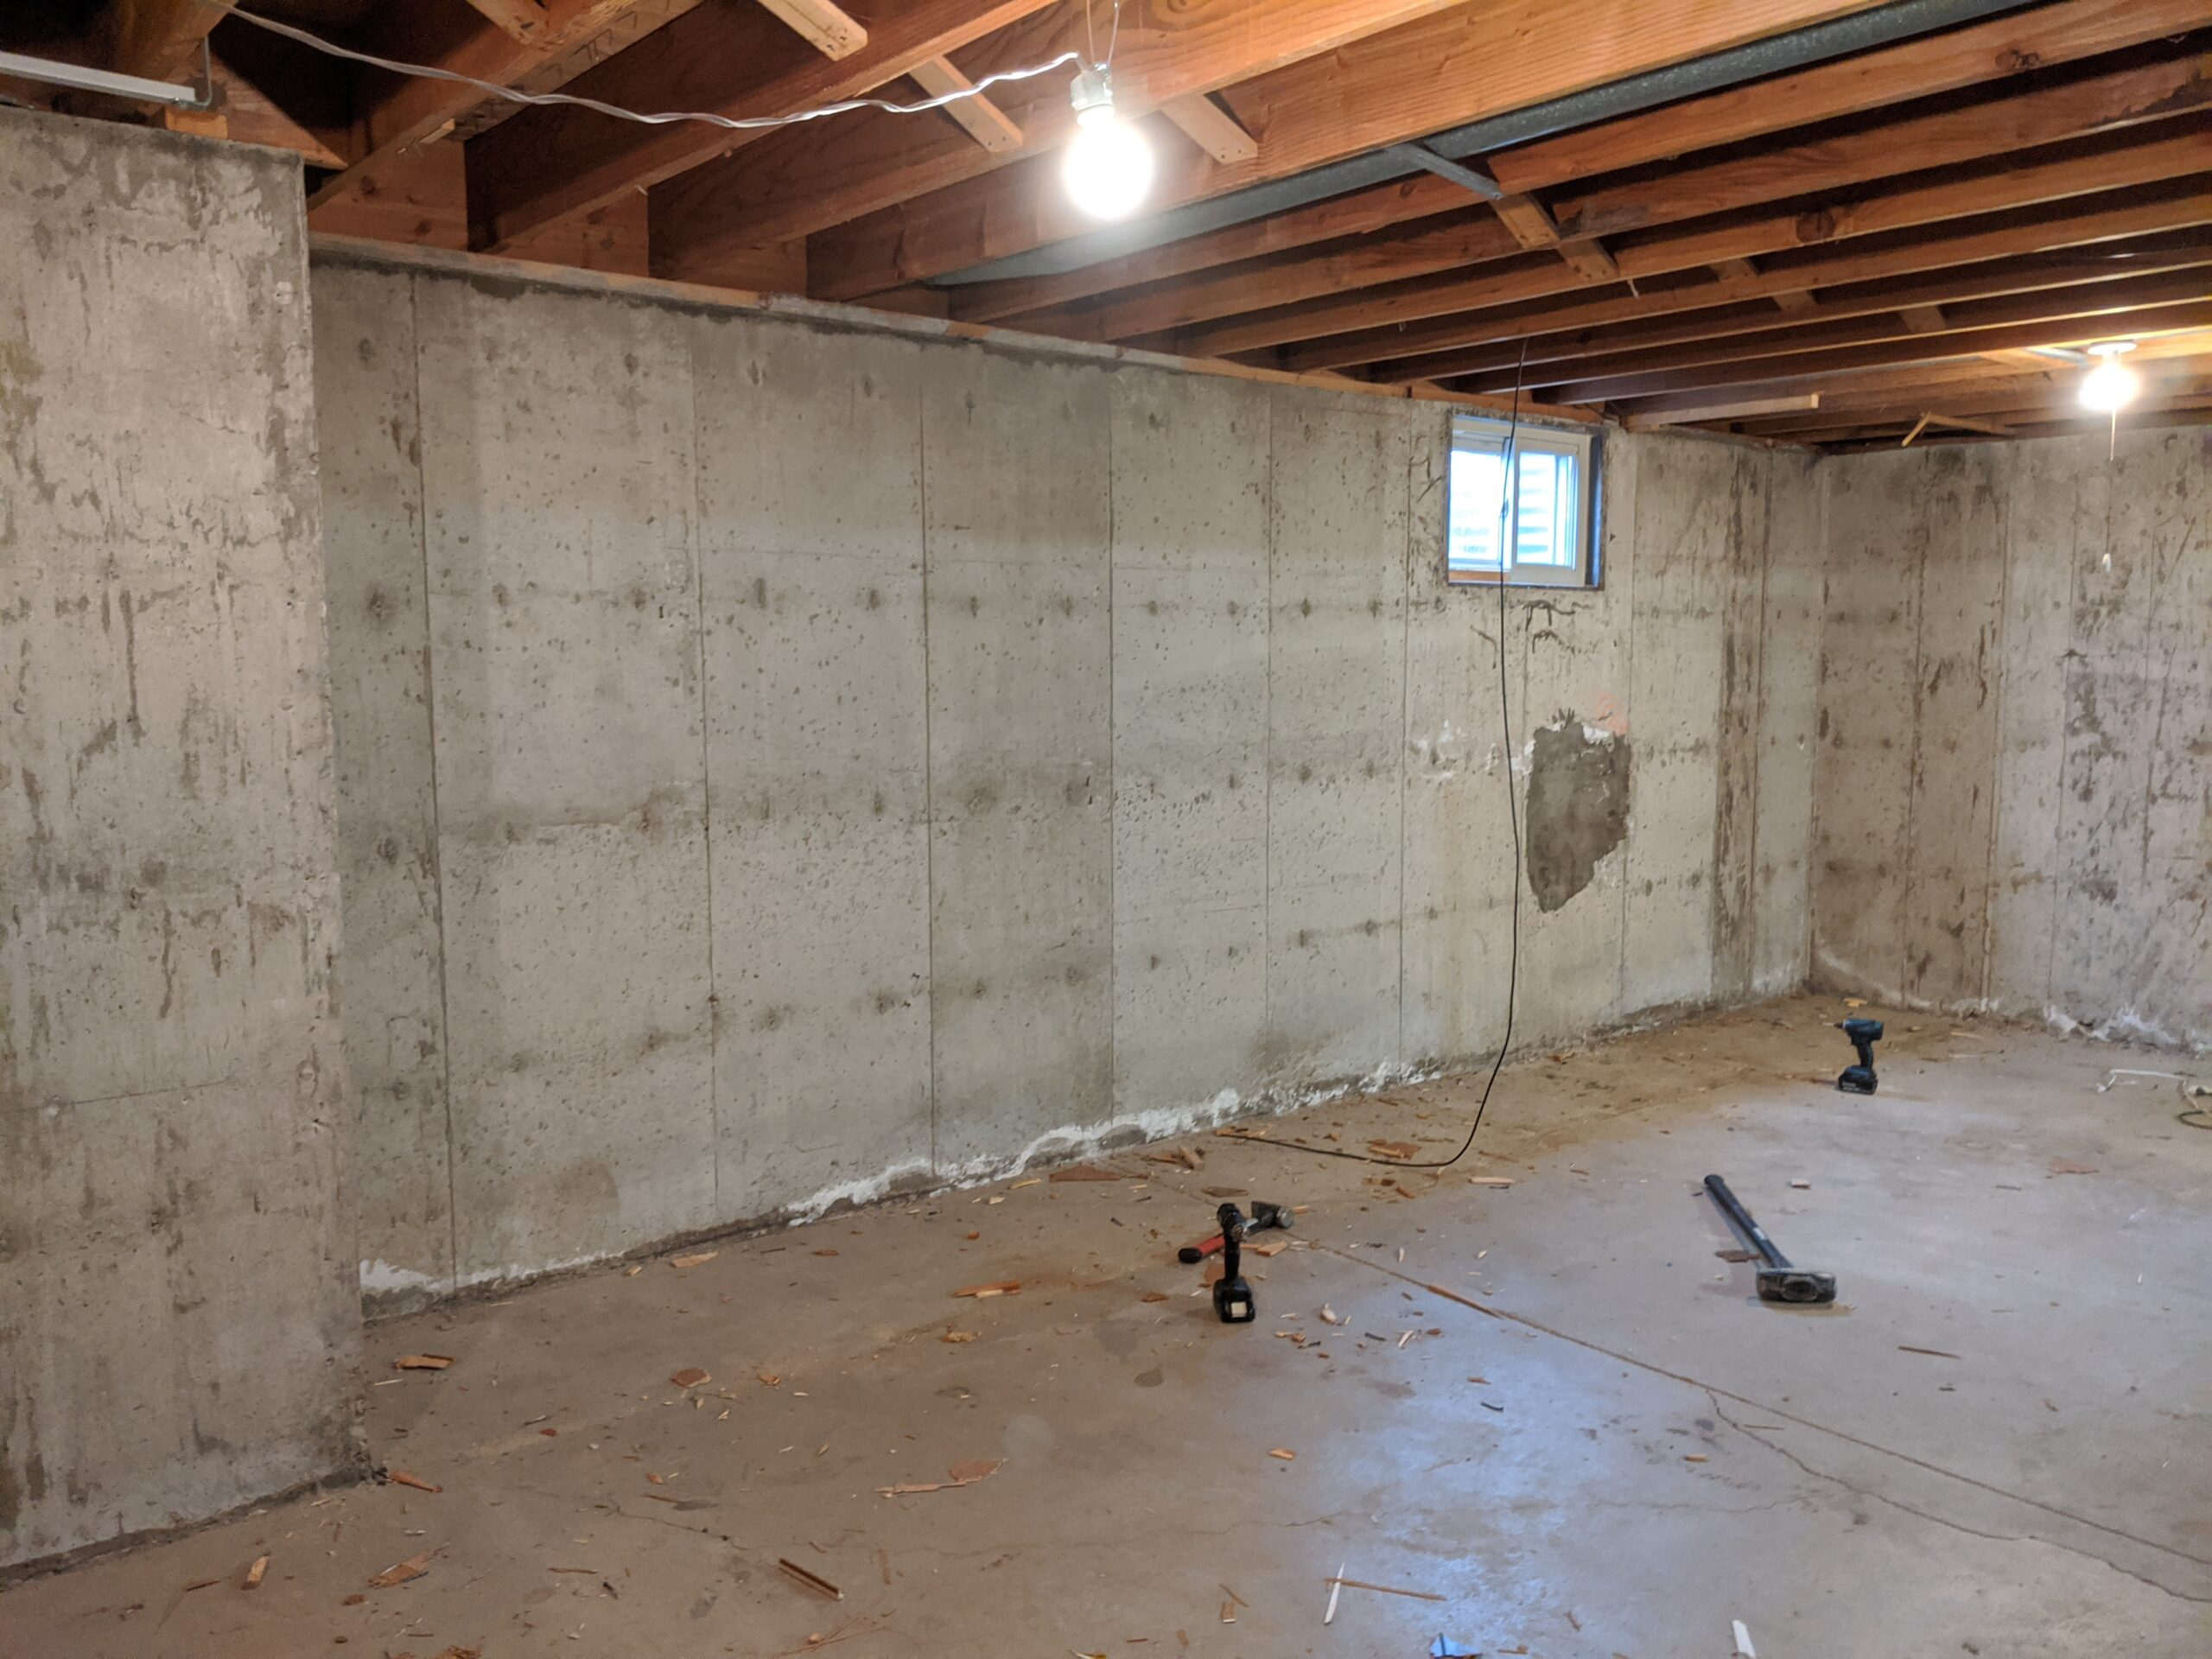 Finally! The cabinets, shelves, paneling, and moisture vapor barrier are all removed to expose the raw foundation walls. The dark spot under that window is a properly completed concrete patch -- and future spot of an egress window to create 1 of 2 legal bedrooms in the basement.